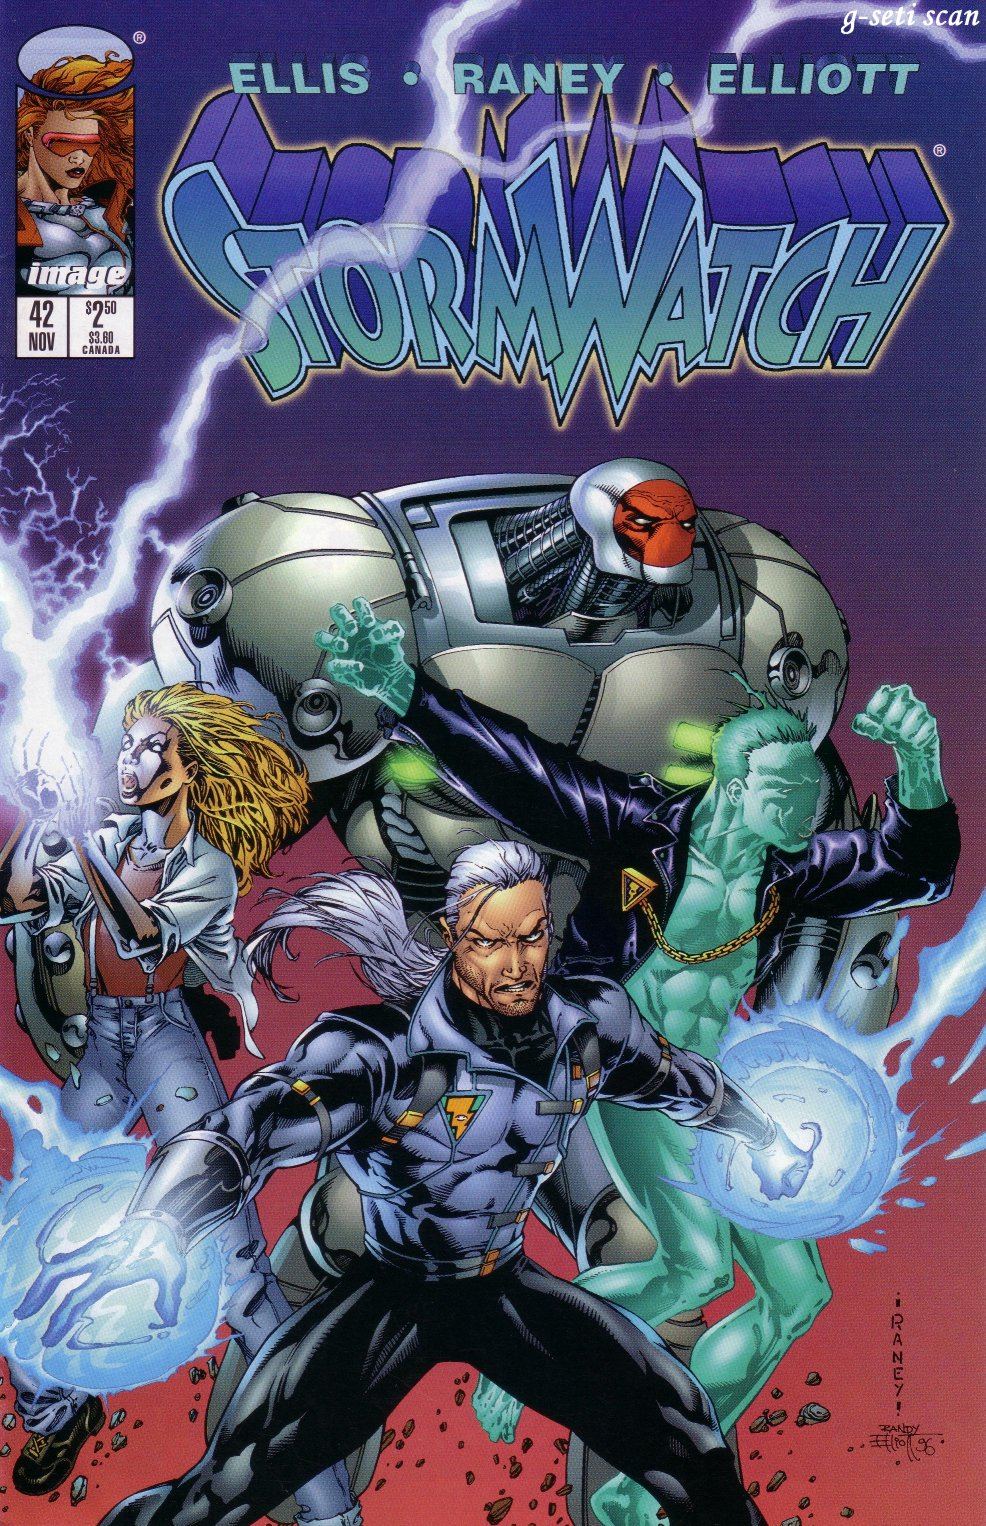 Stormwatch (1993) issue 42 - Page 1